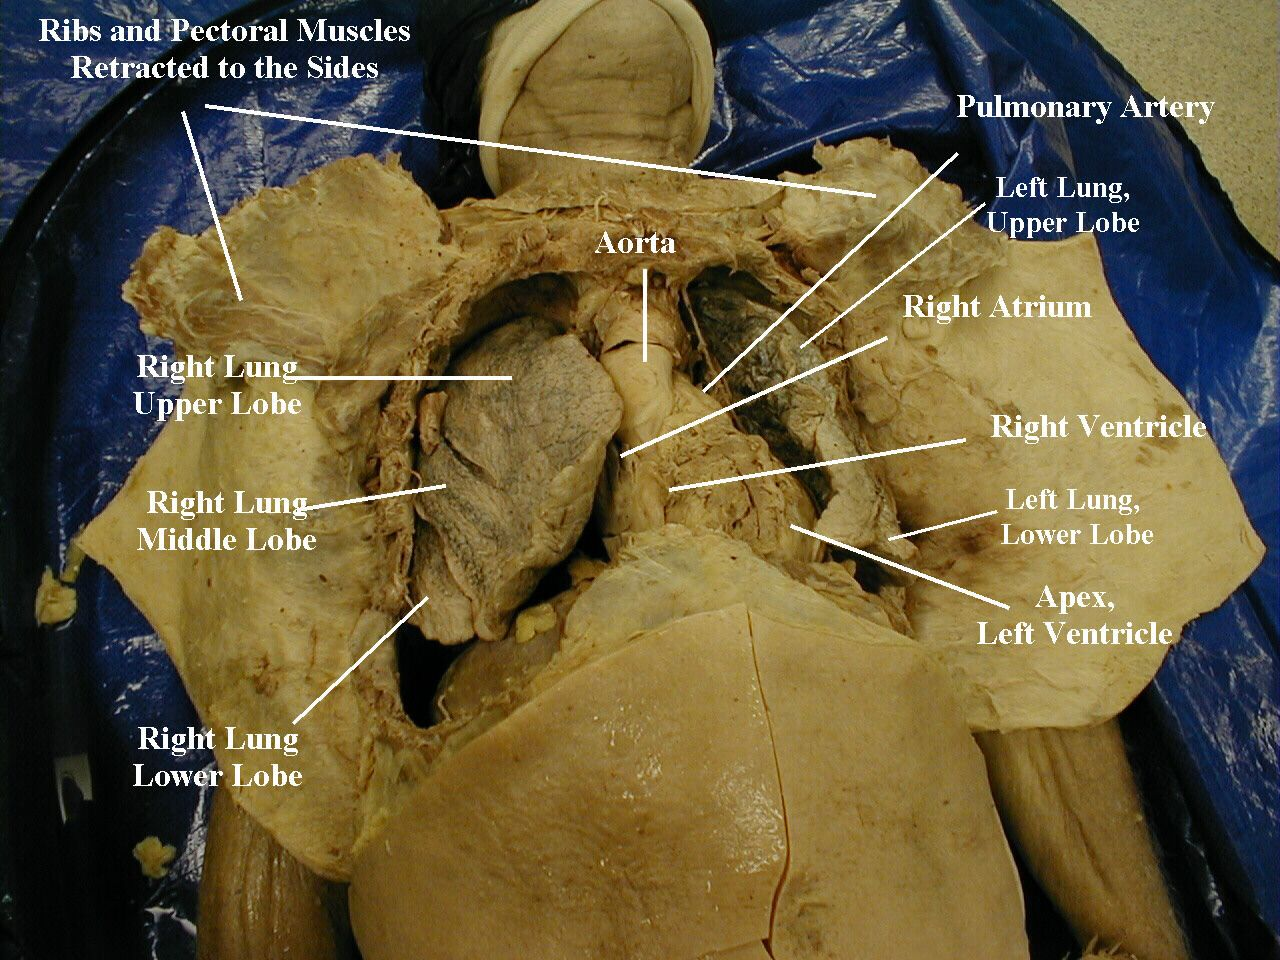 Dissection Of Cadaver At Medical School Note That The Body Does Not